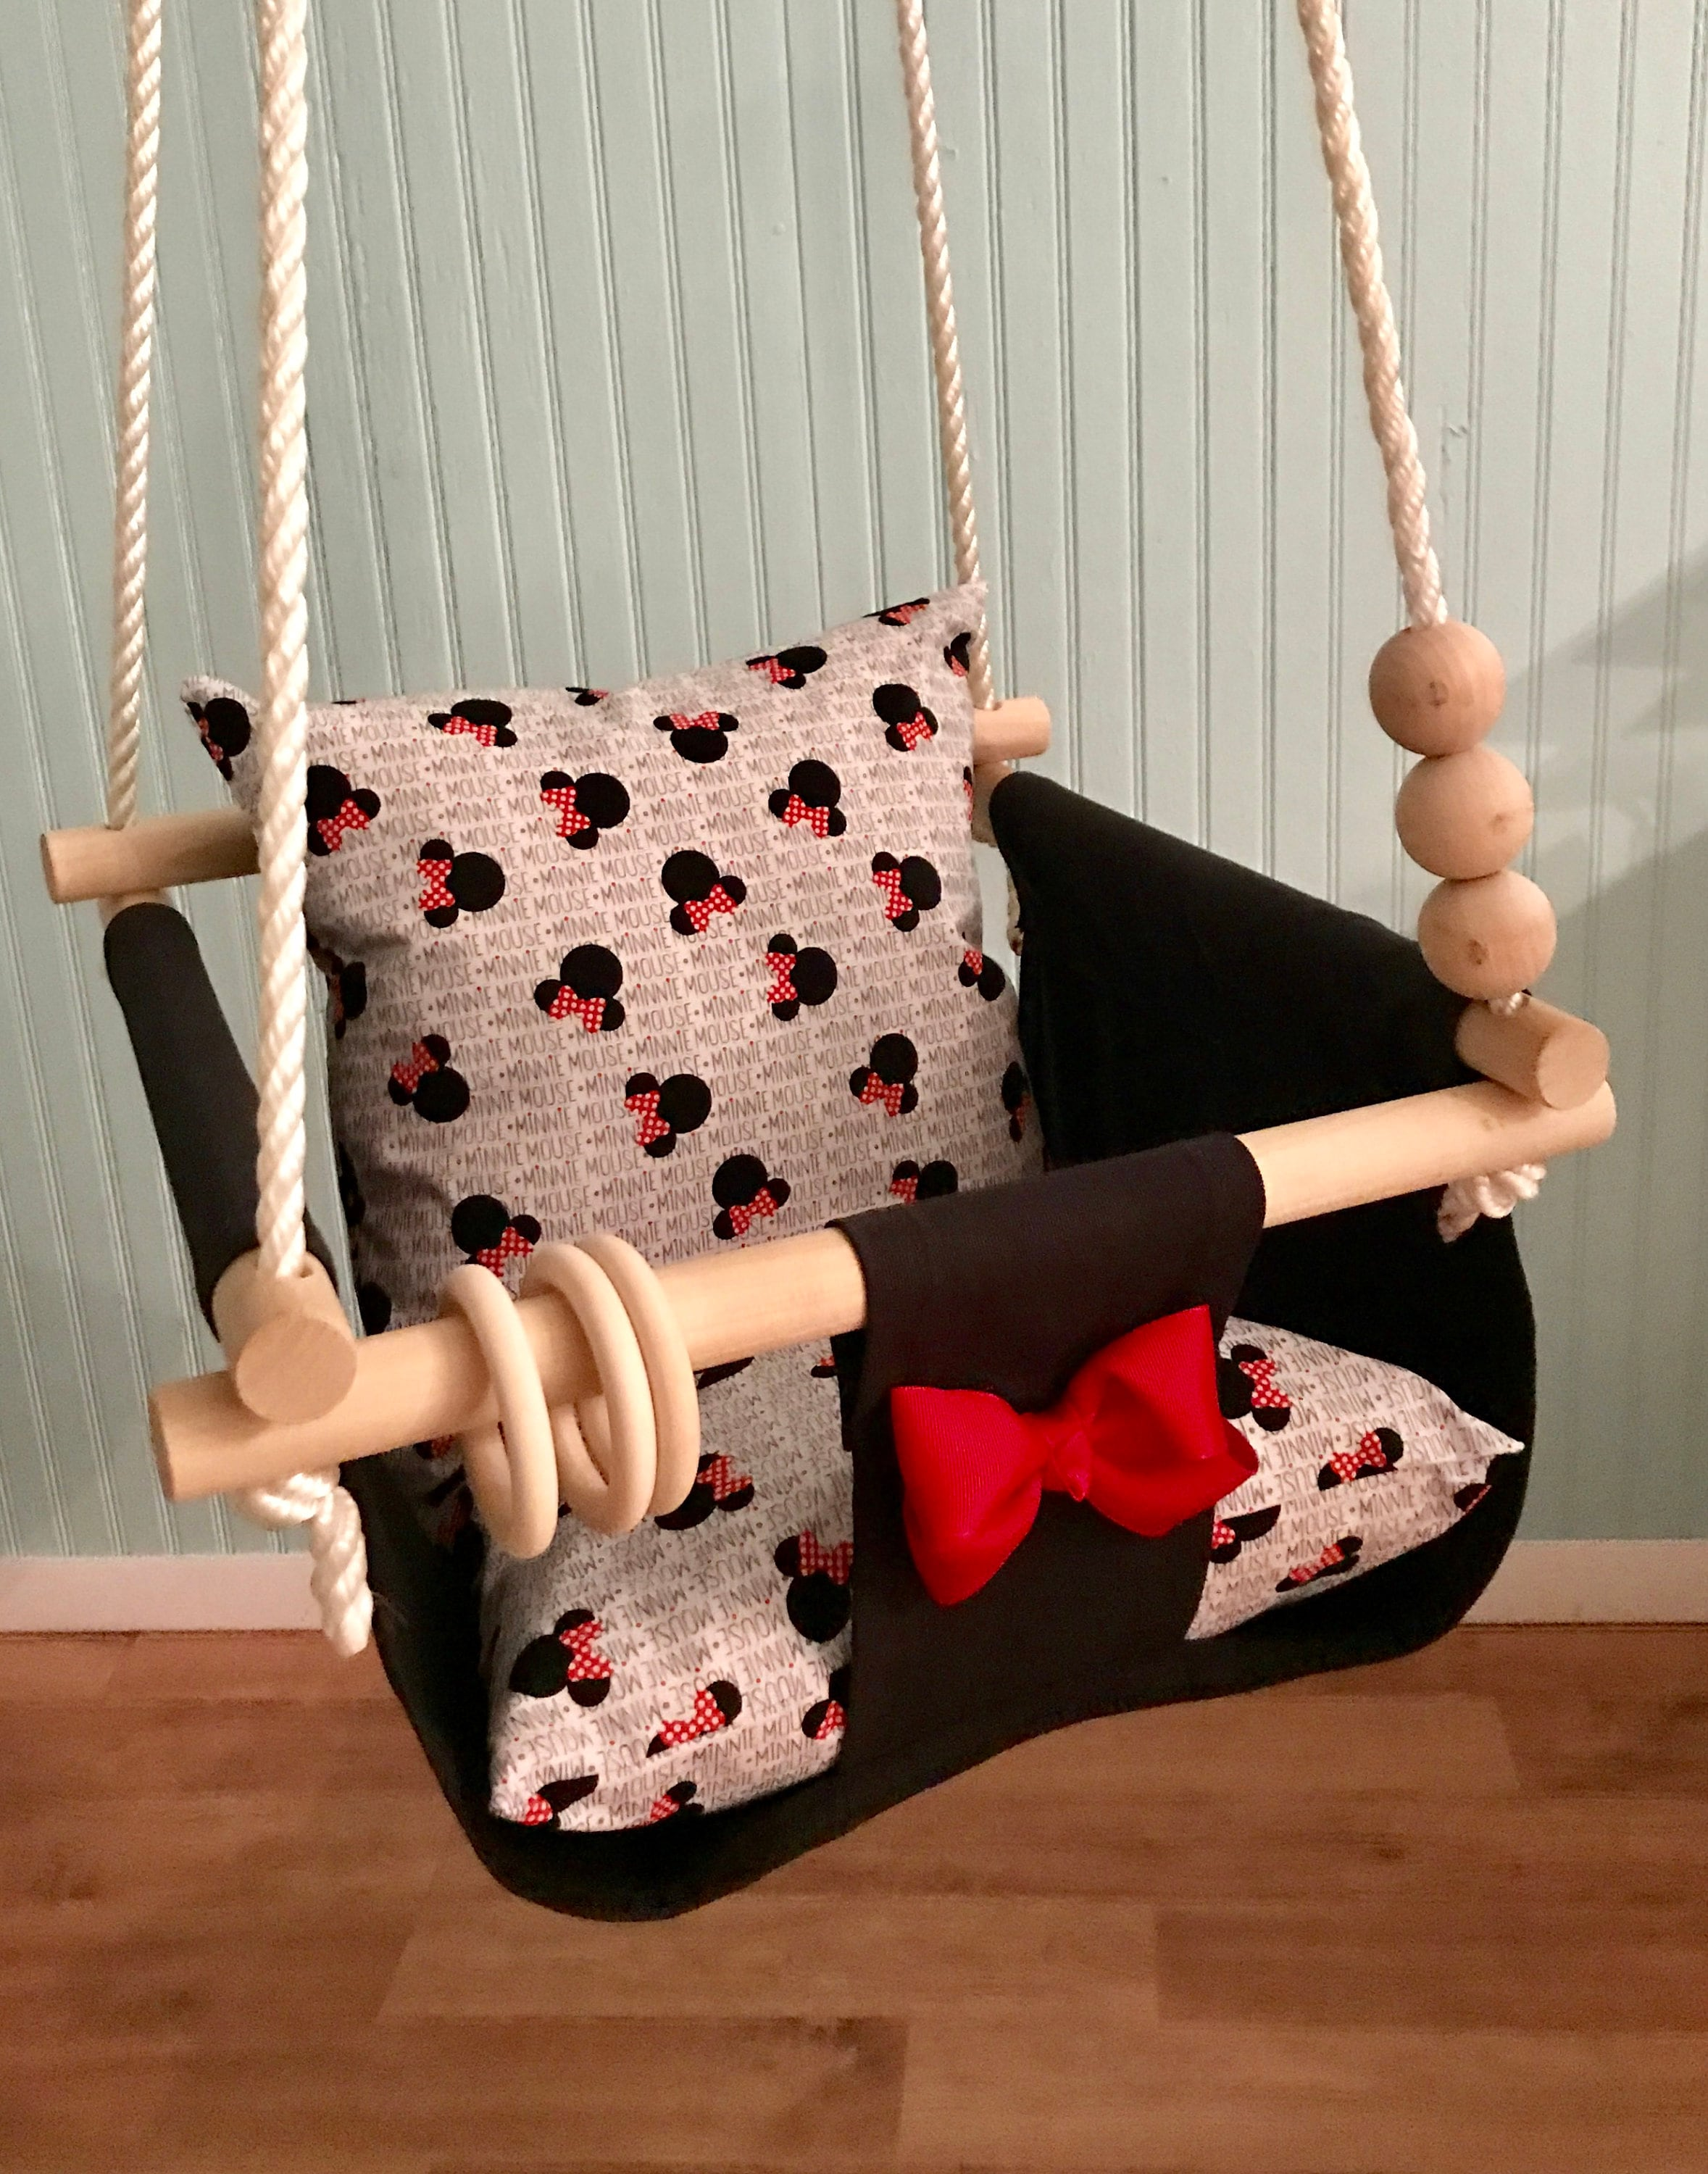 Baby Swing Minnie Mouse 1st Birthday Gift Nursery Decor Indoor Outdoor Porch SwingToddler SwingDisney